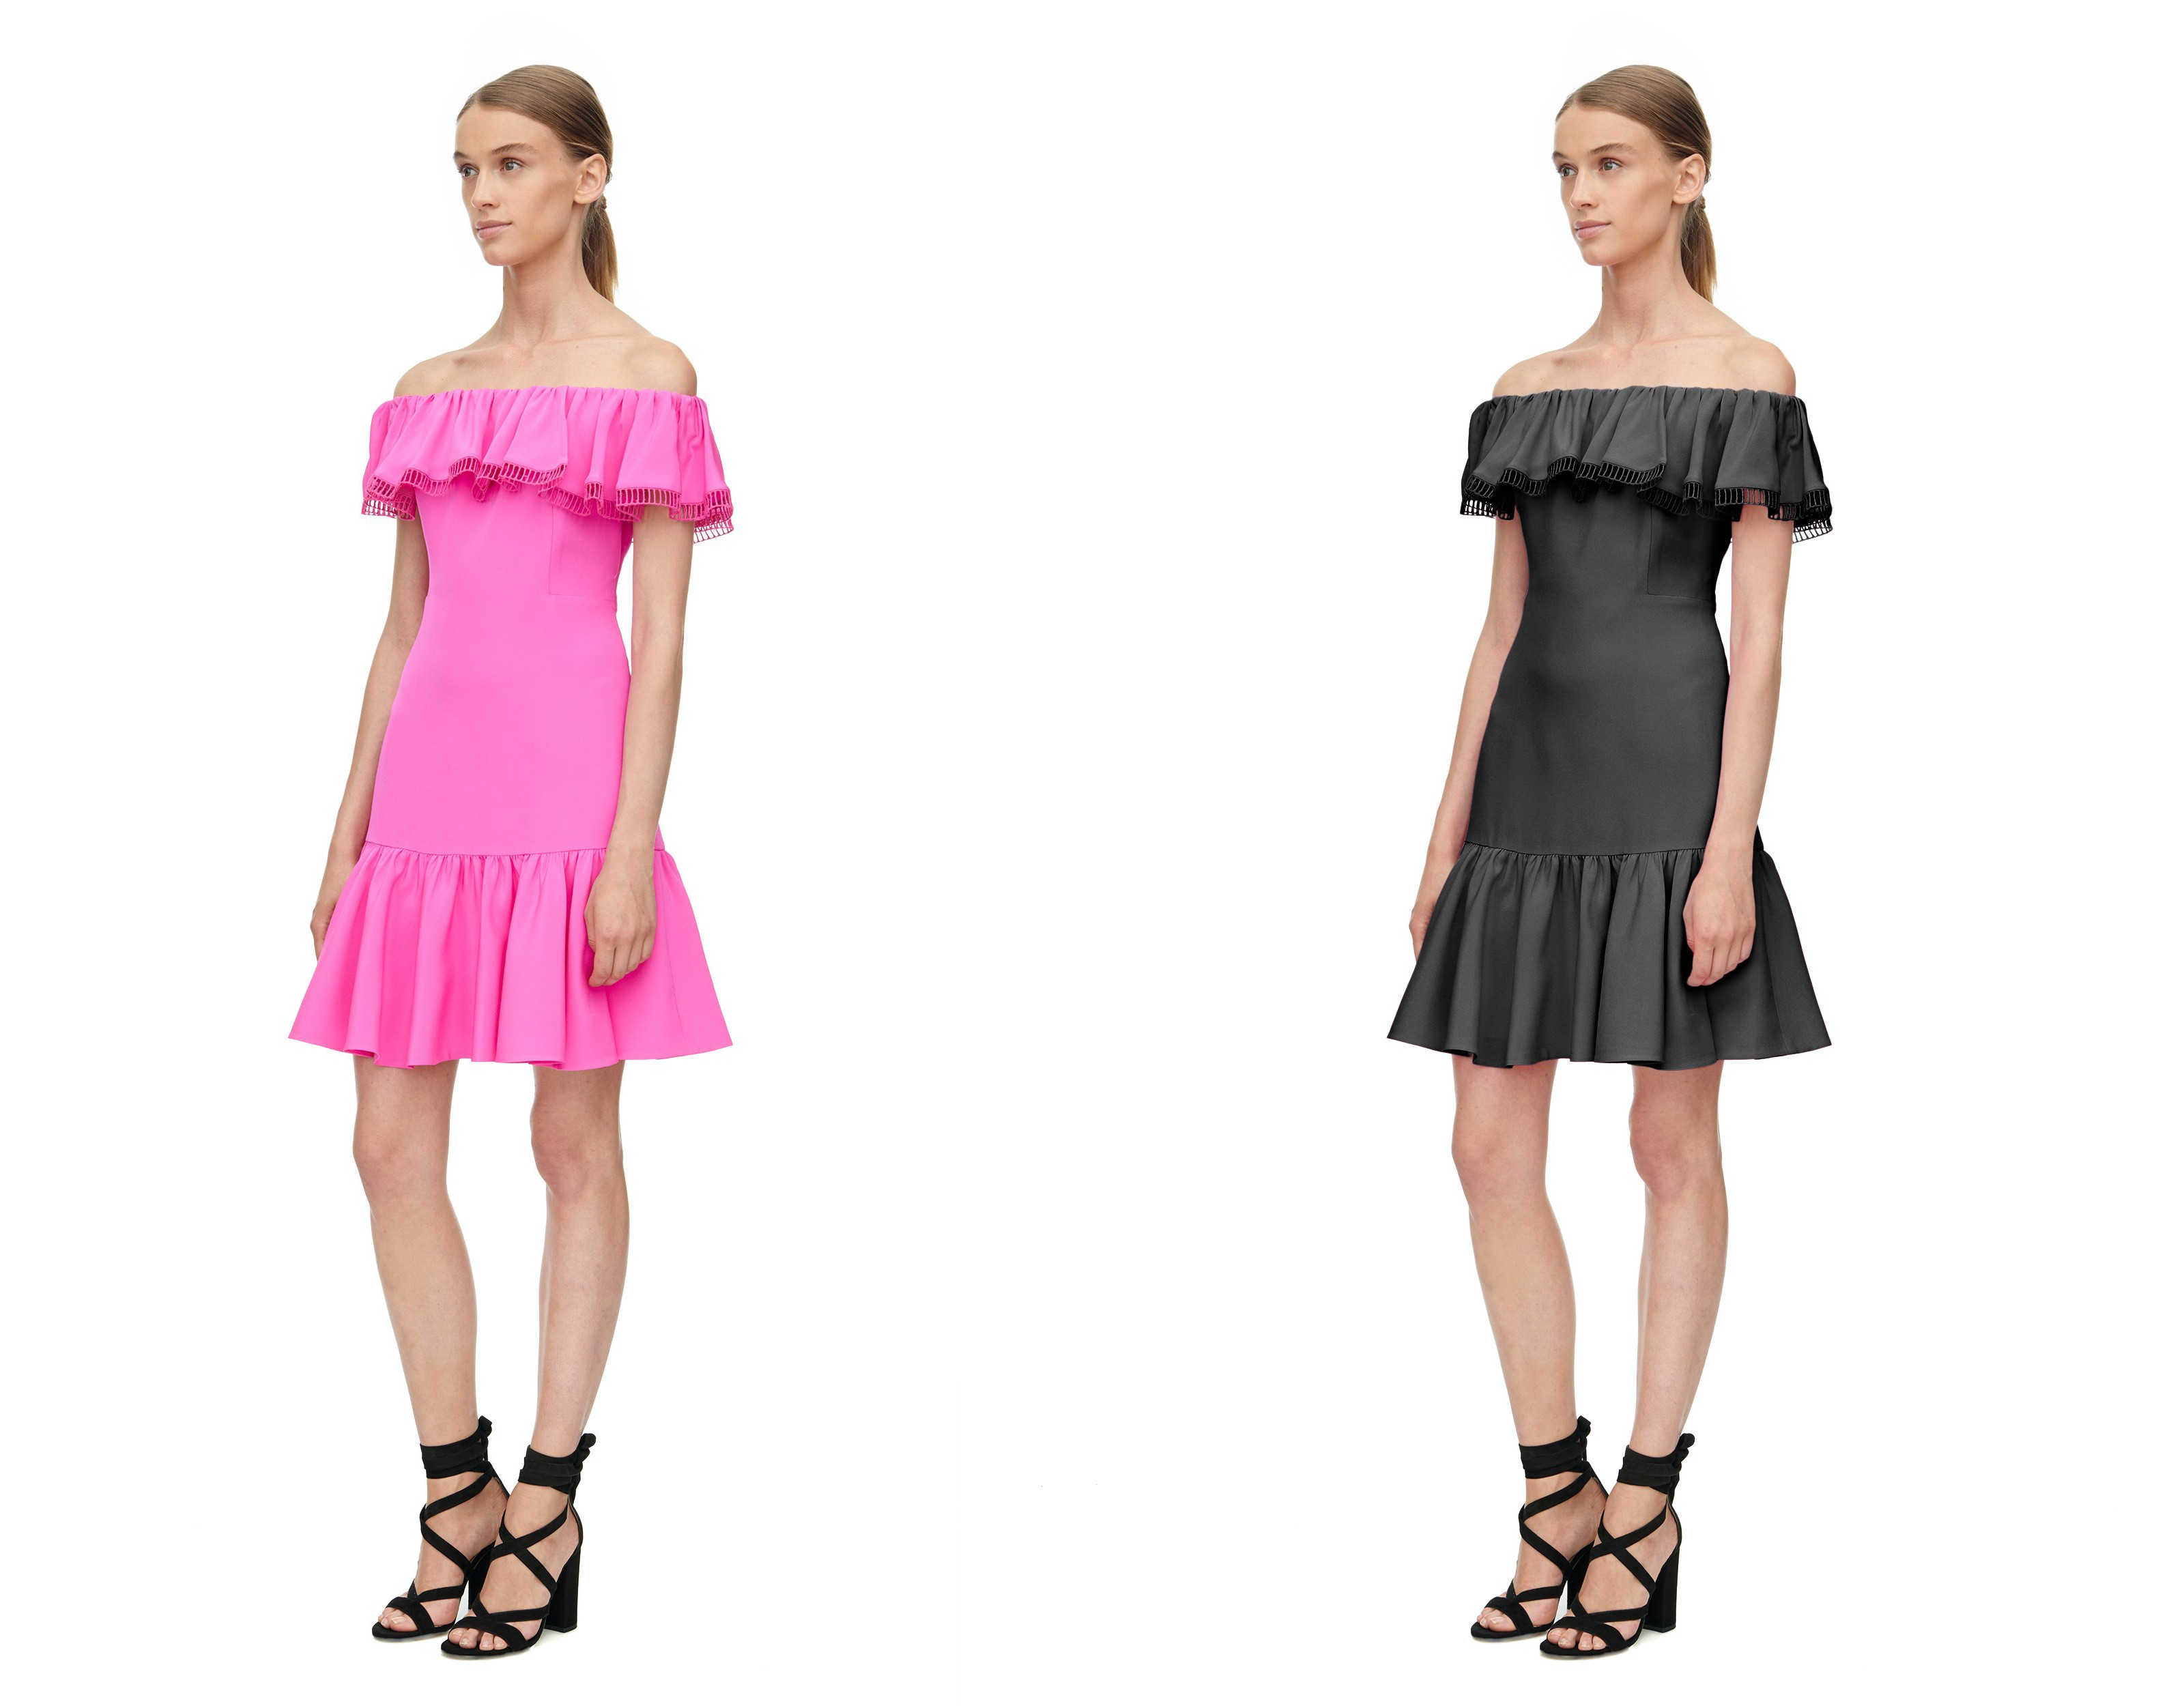 Sample fashion photo color adjustment (changed dress from pink to black).